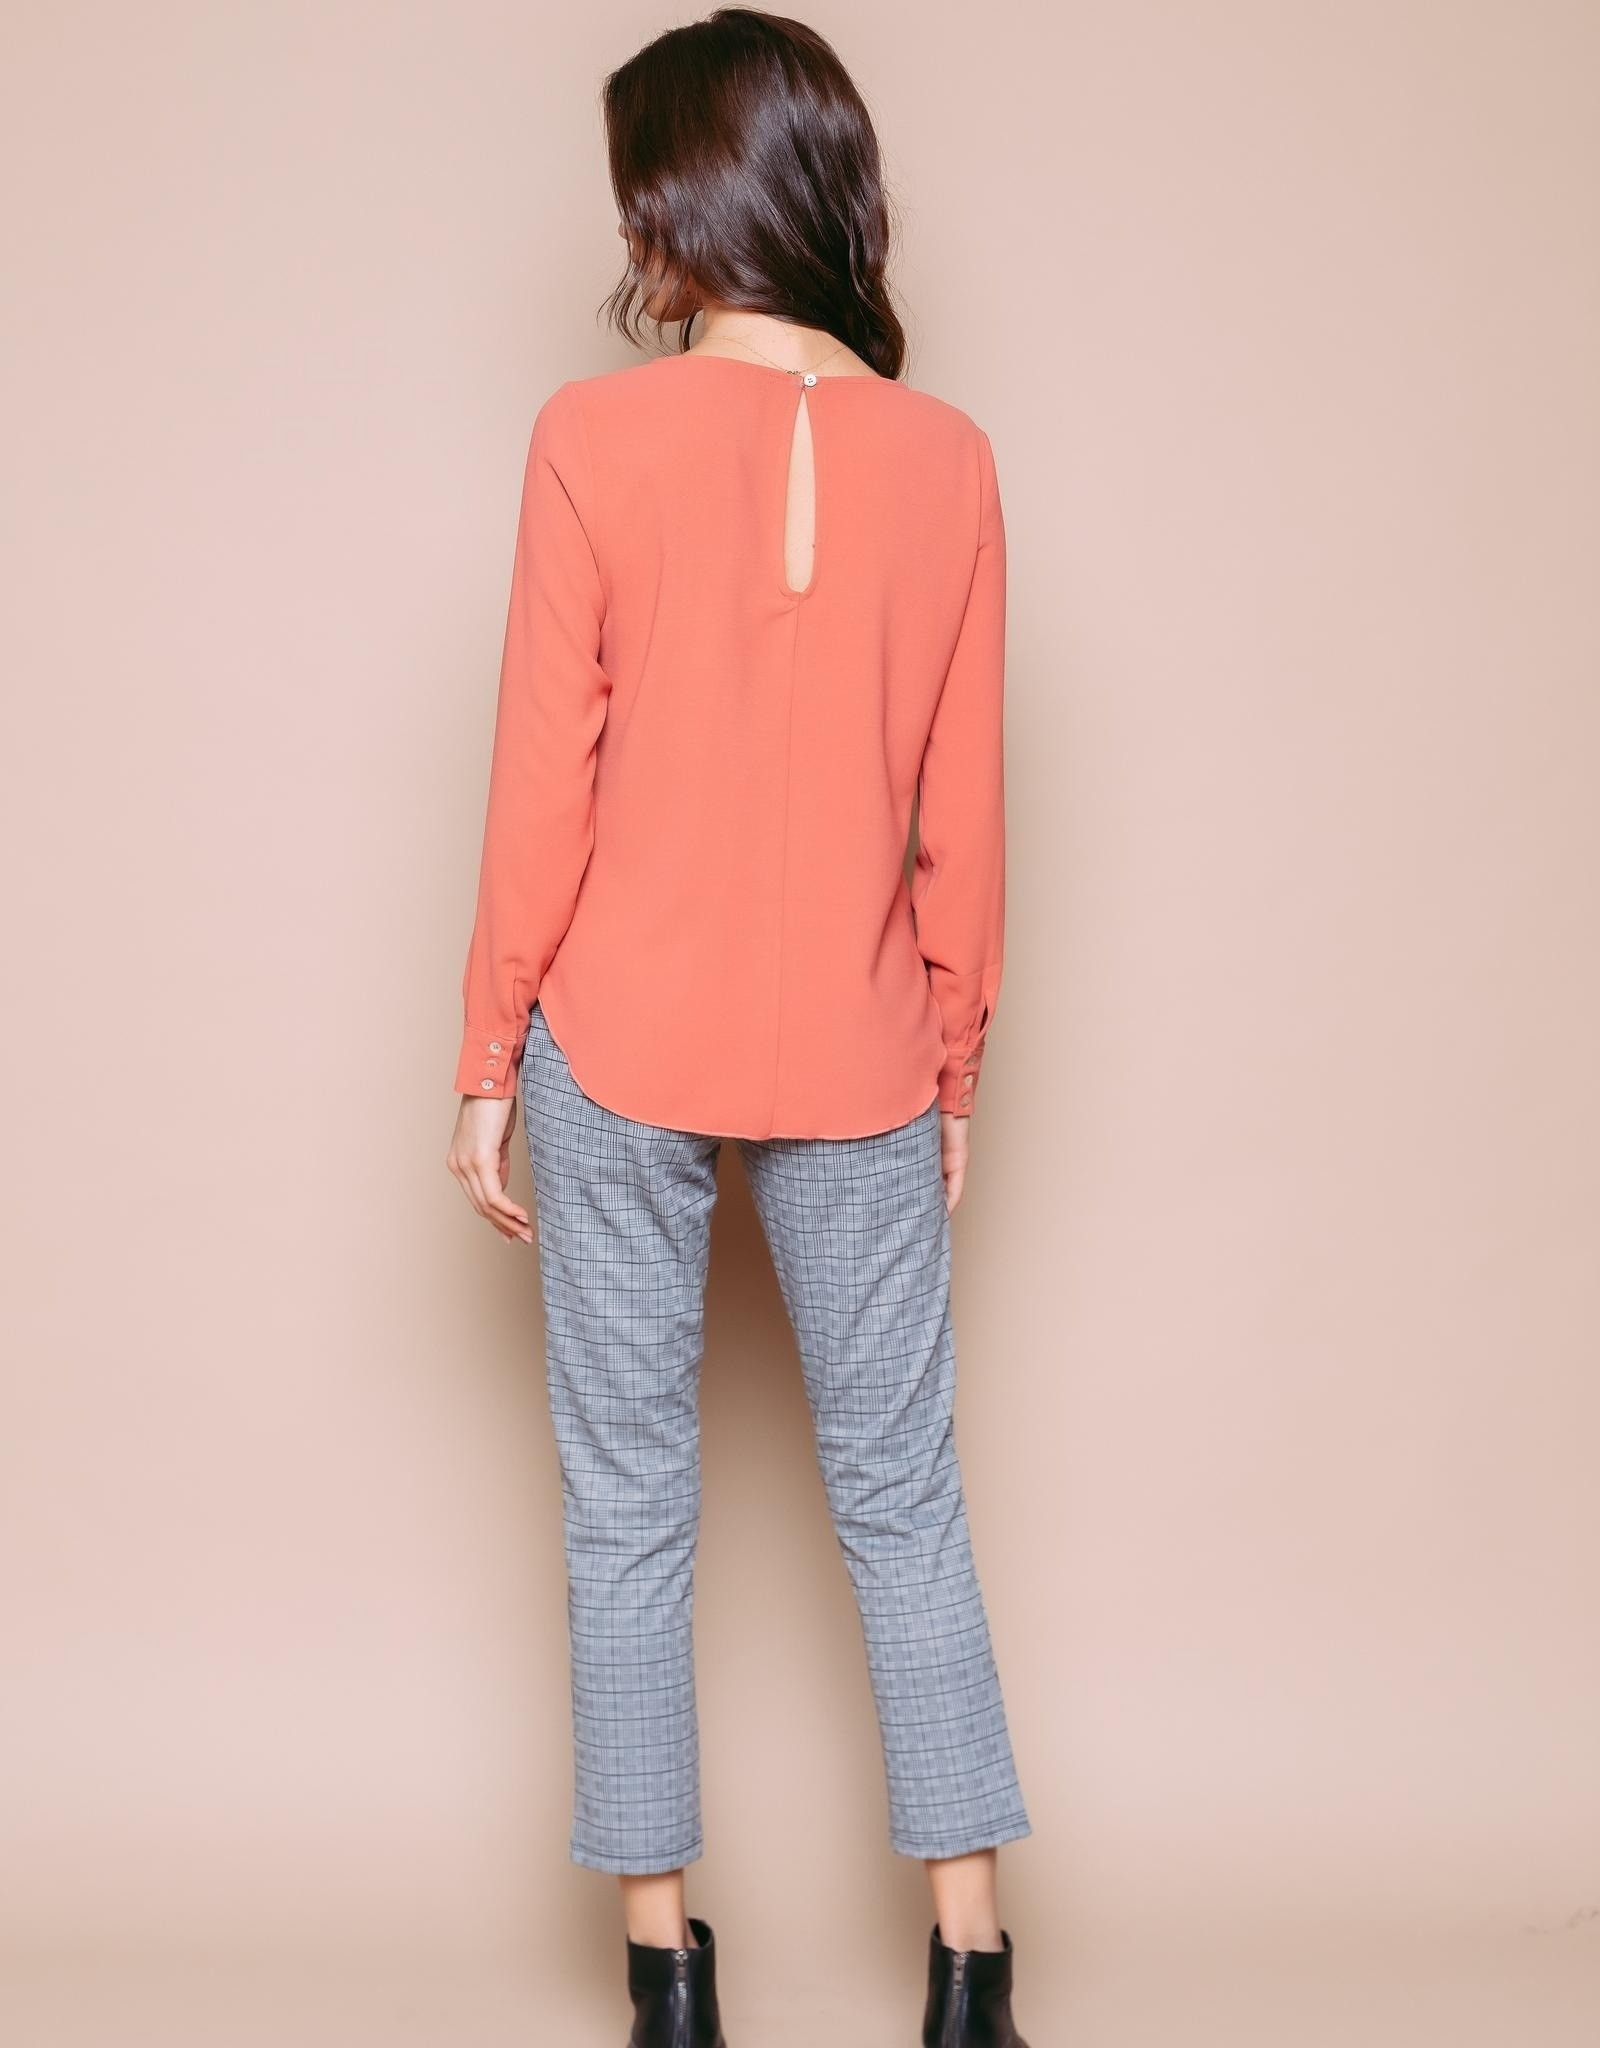 Orb Clothing Laurie Blouse